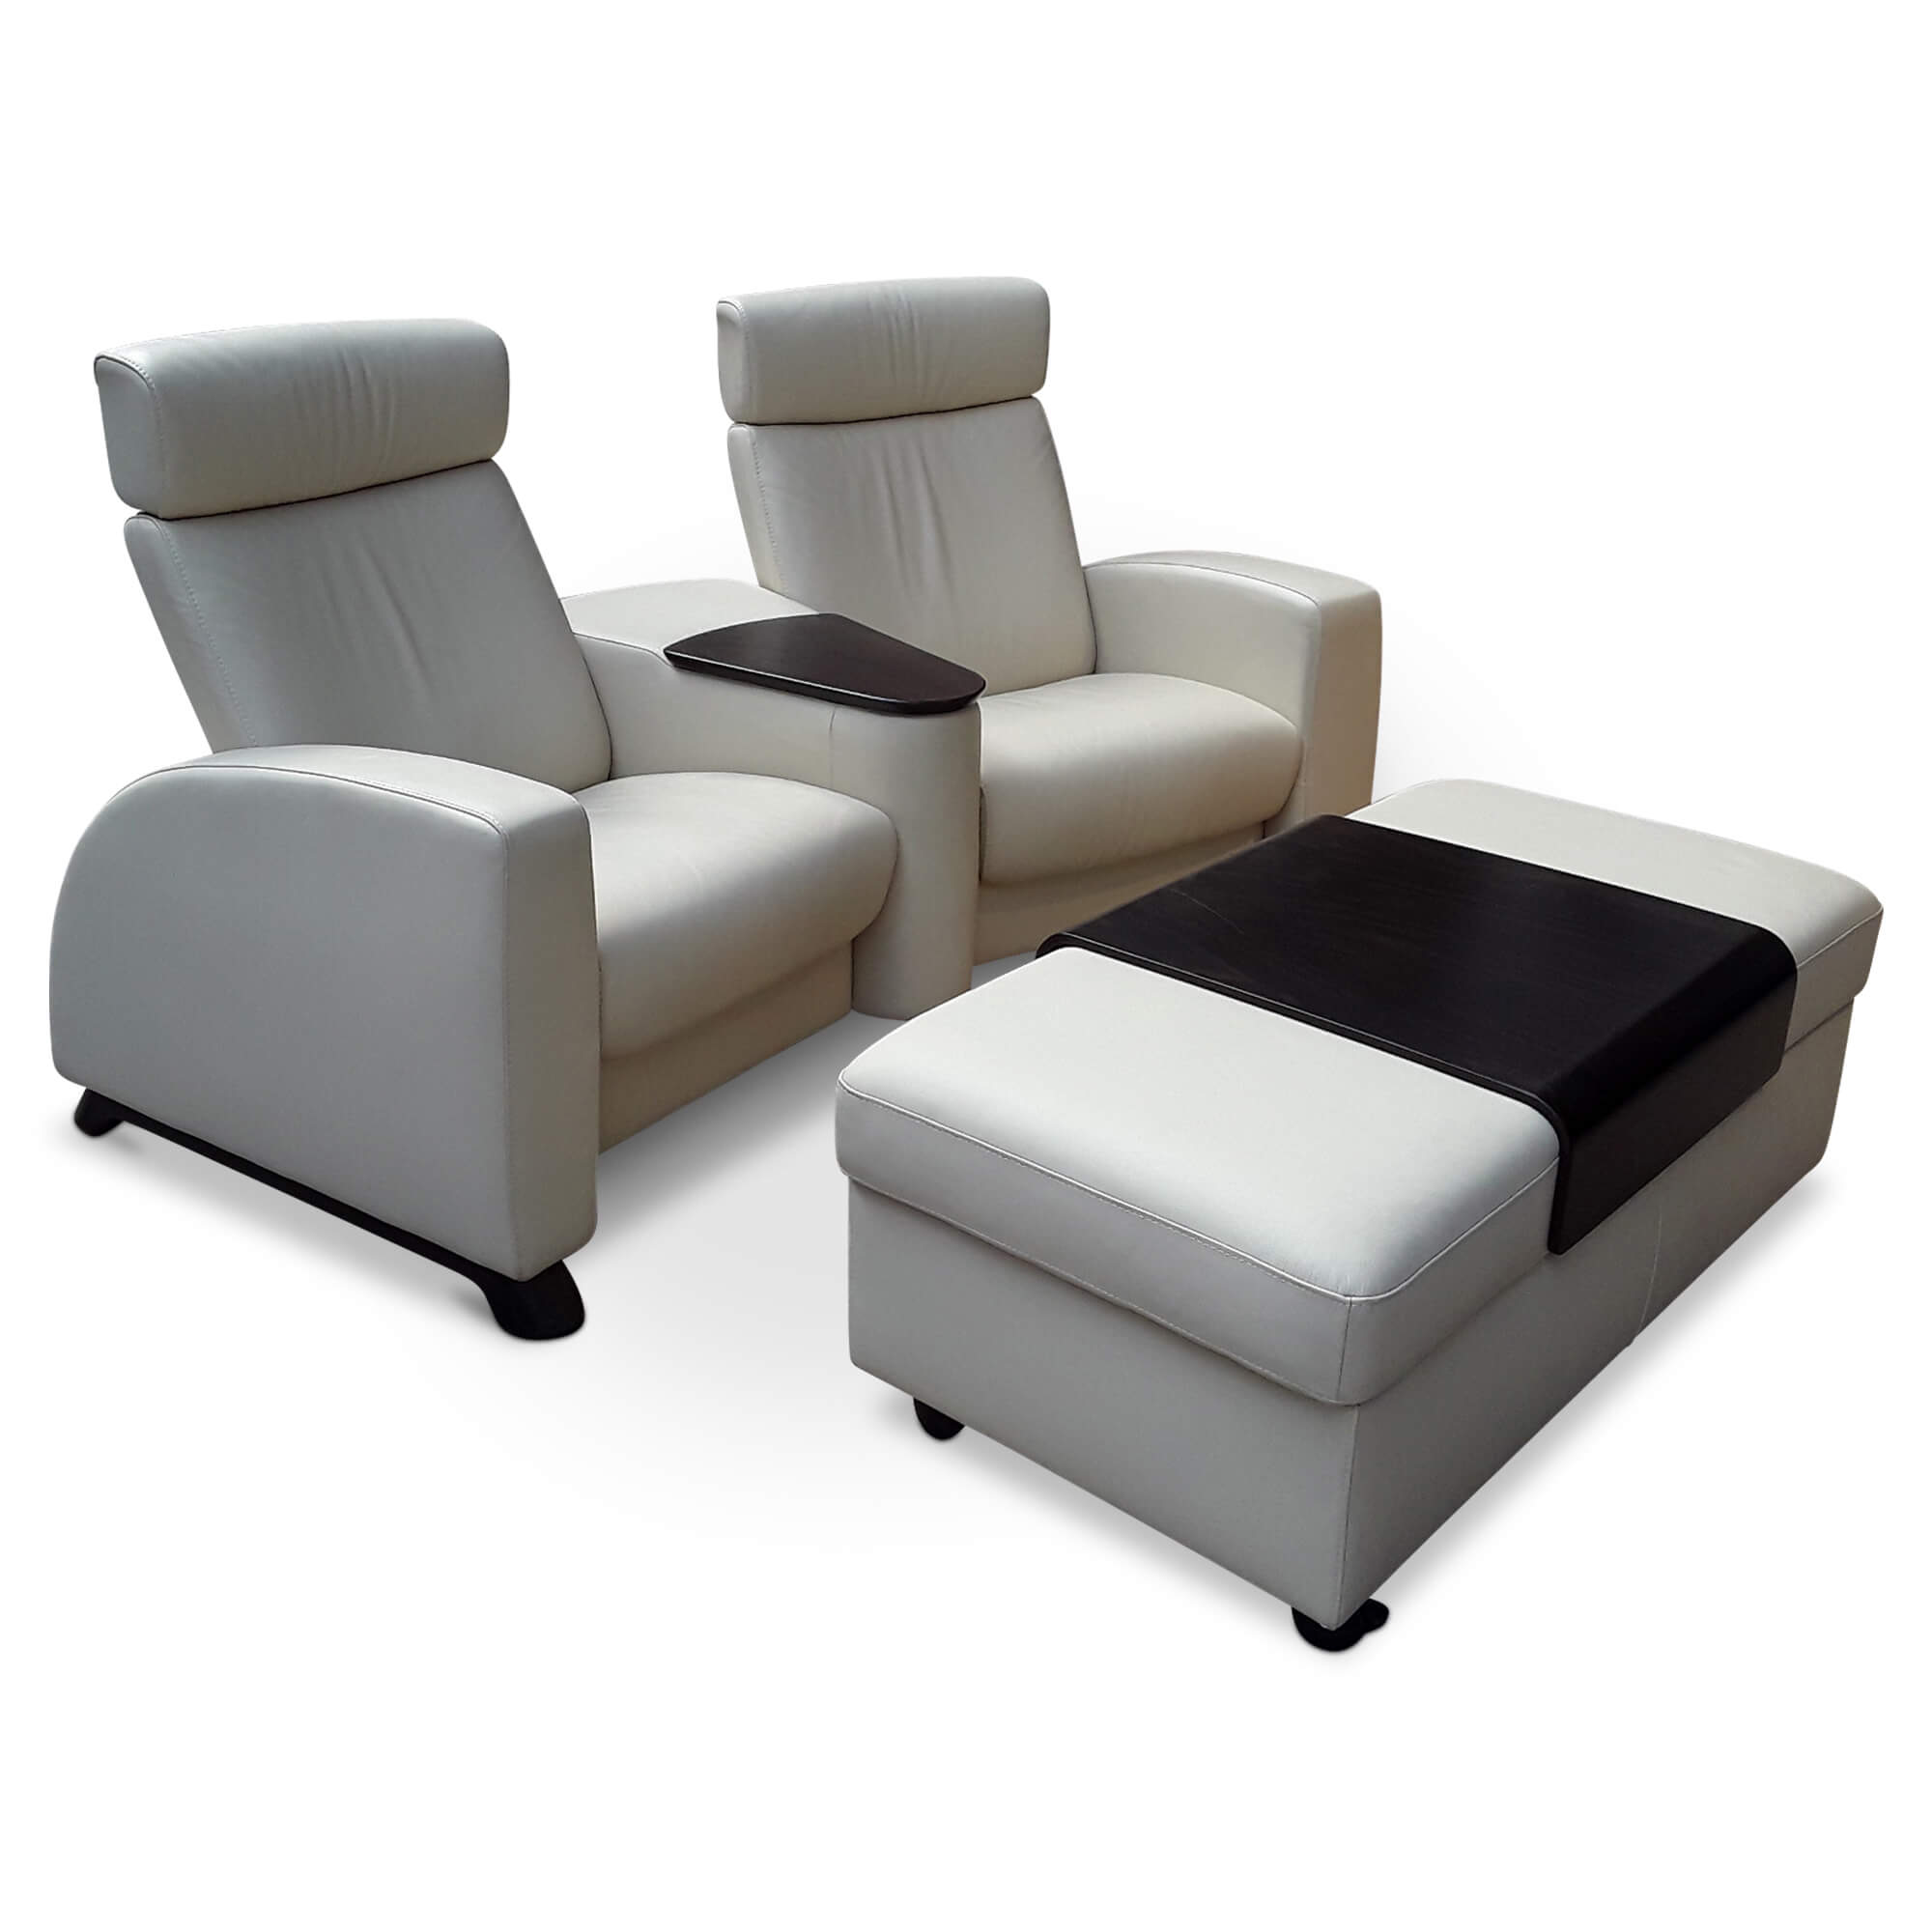 kinosofa arion 07 mit hocker stressless sofas g nstig kaufen m belfirst. Black Bedroom Furniture Sets. Home Design Ideas